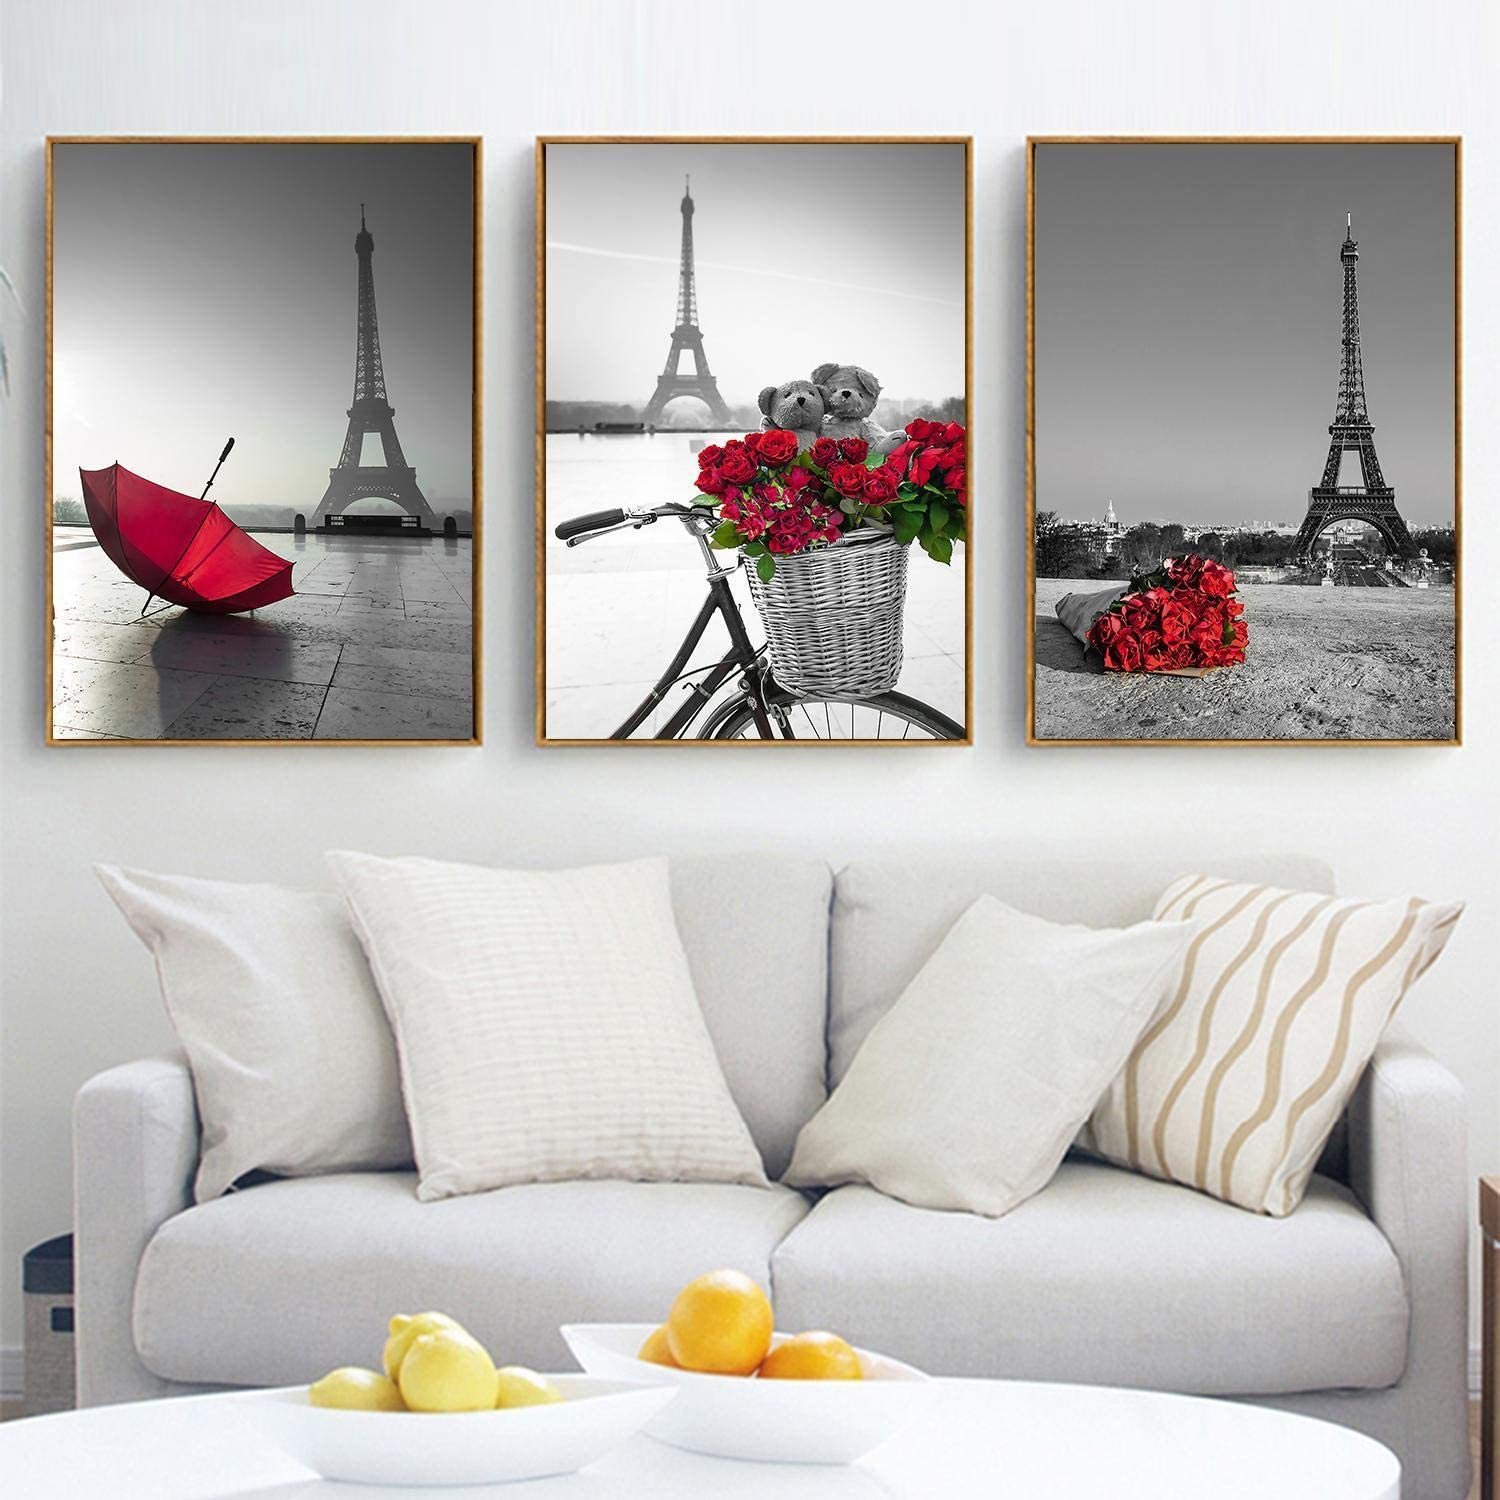 werall Beautiful Frameless Colorful Painting Printed Oil Painting Home Decorations Paintings